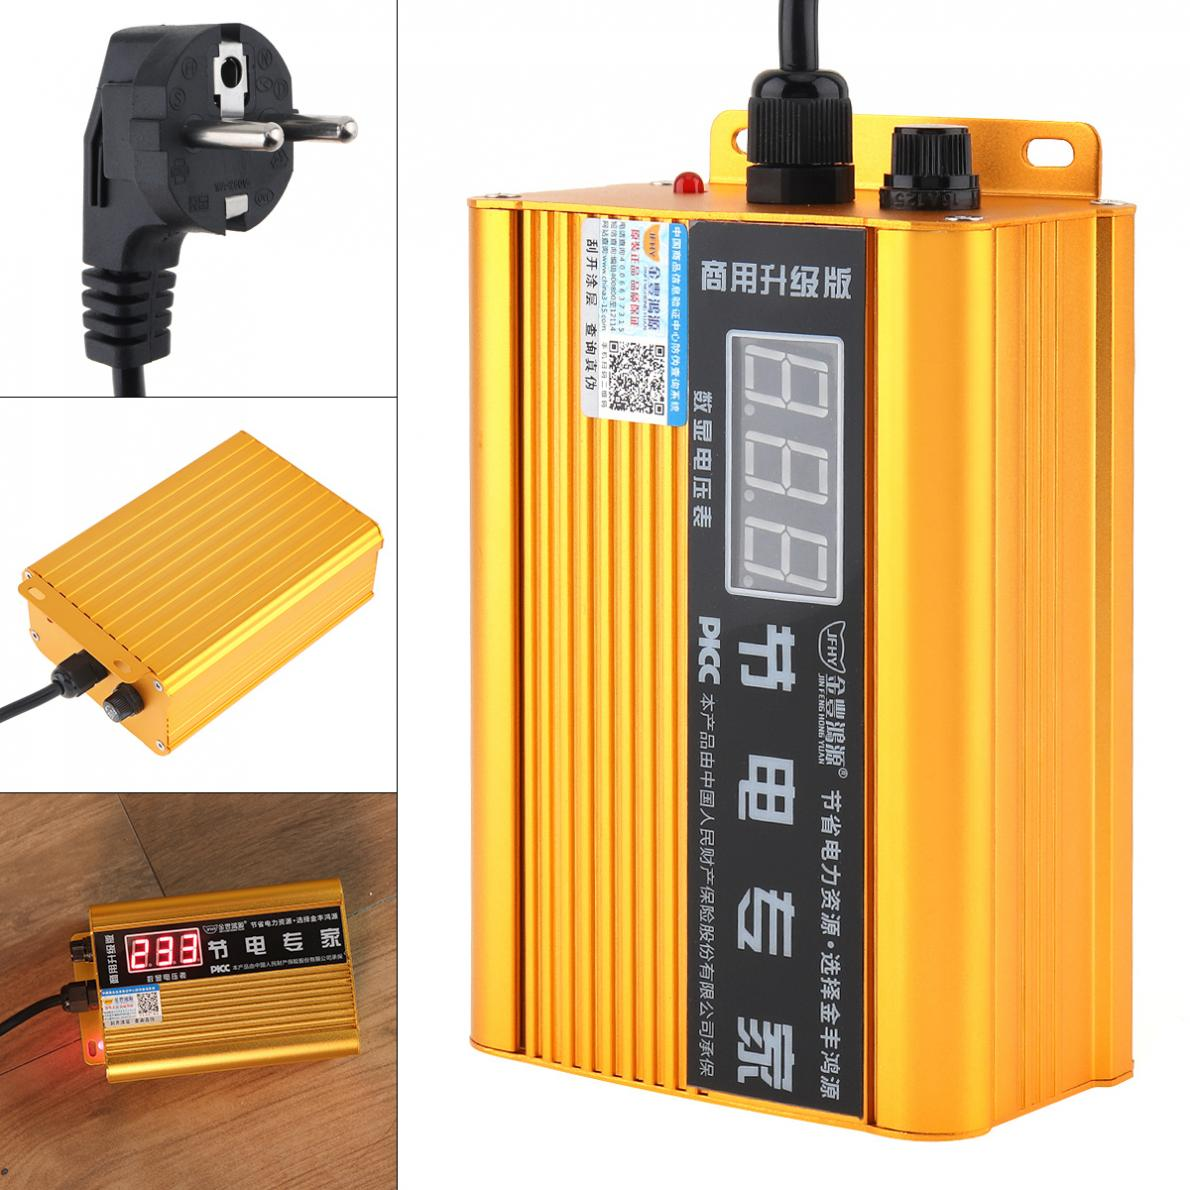 US $25.37 40% OFF|JF 001B 110000W AC Voltage Electricity Saving Box on